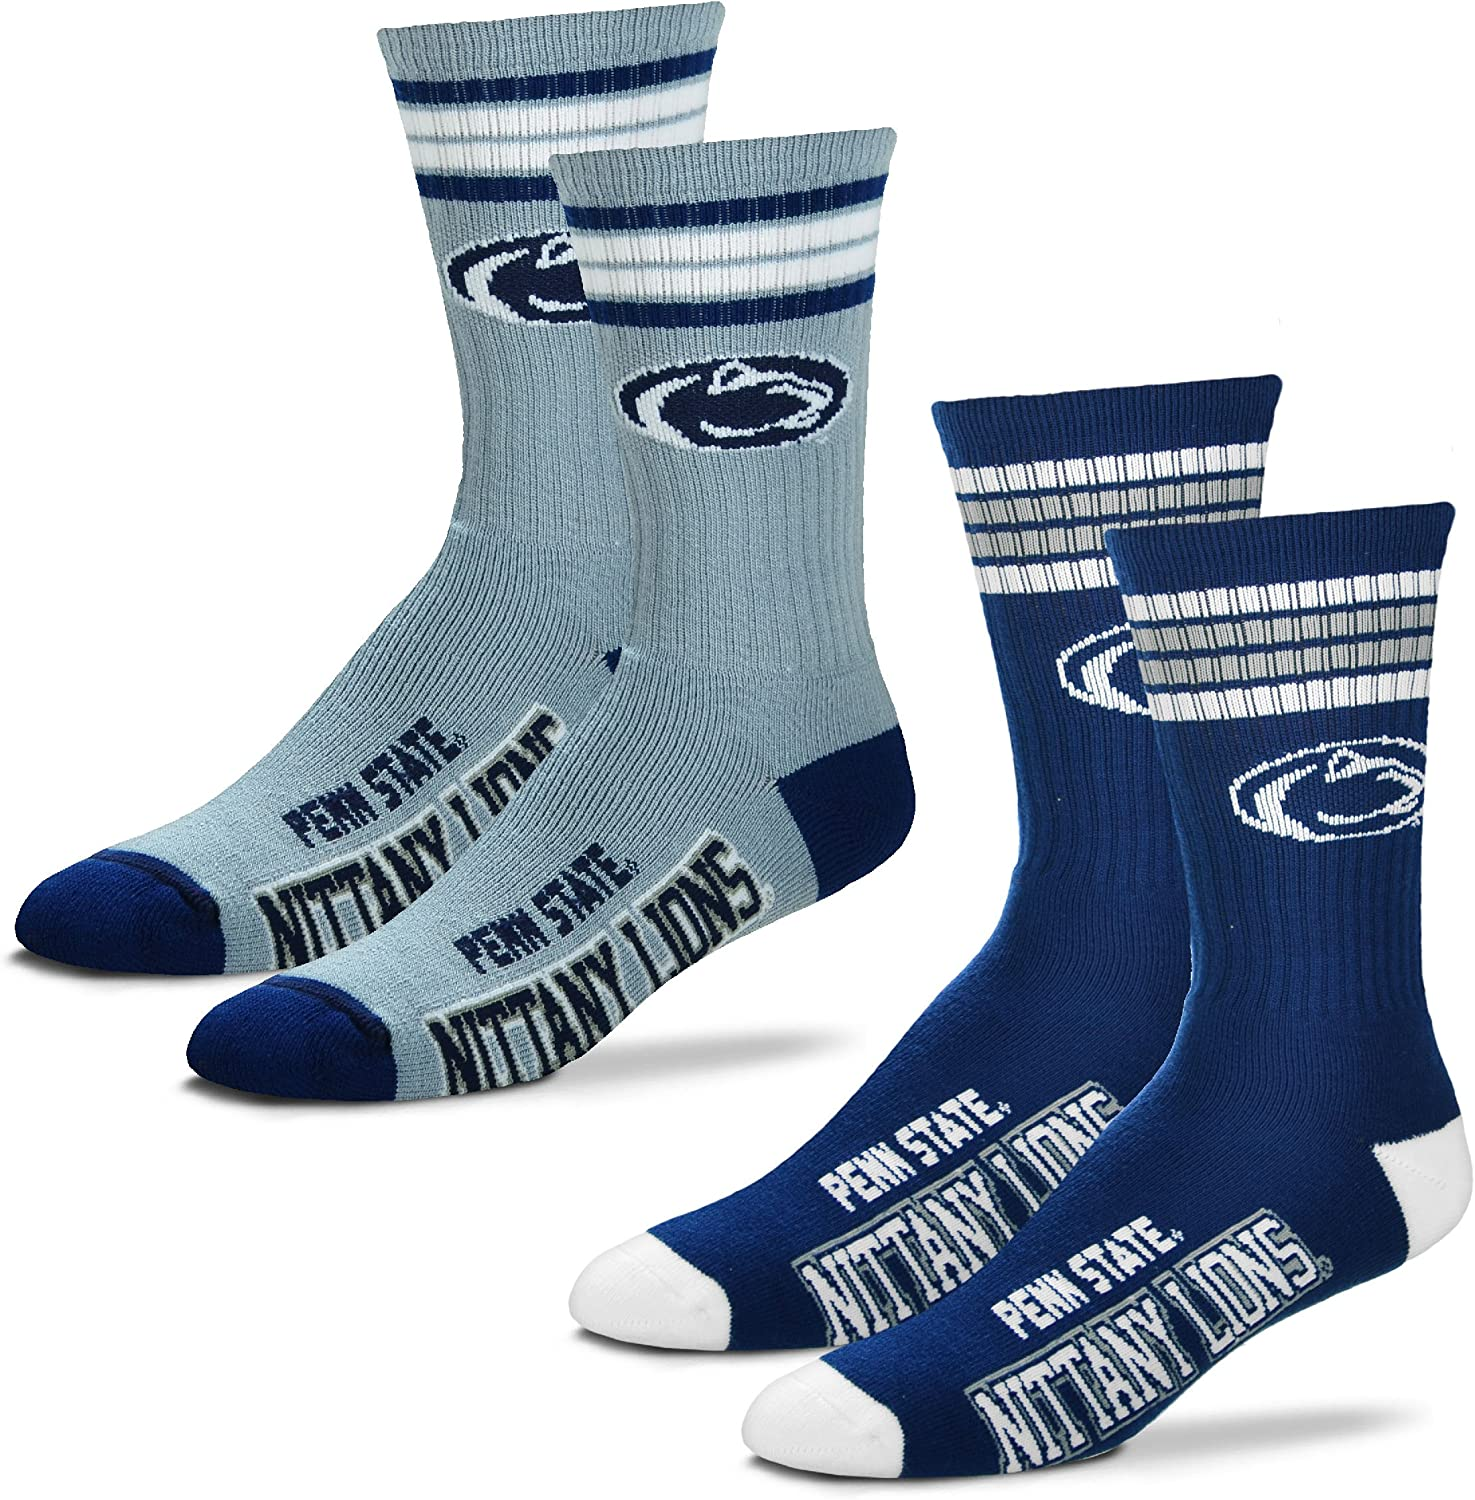 -4 Stripe Deuce Crew Socks-Size Large and Medium 2-Pack For Bare Feet Mens NCAA